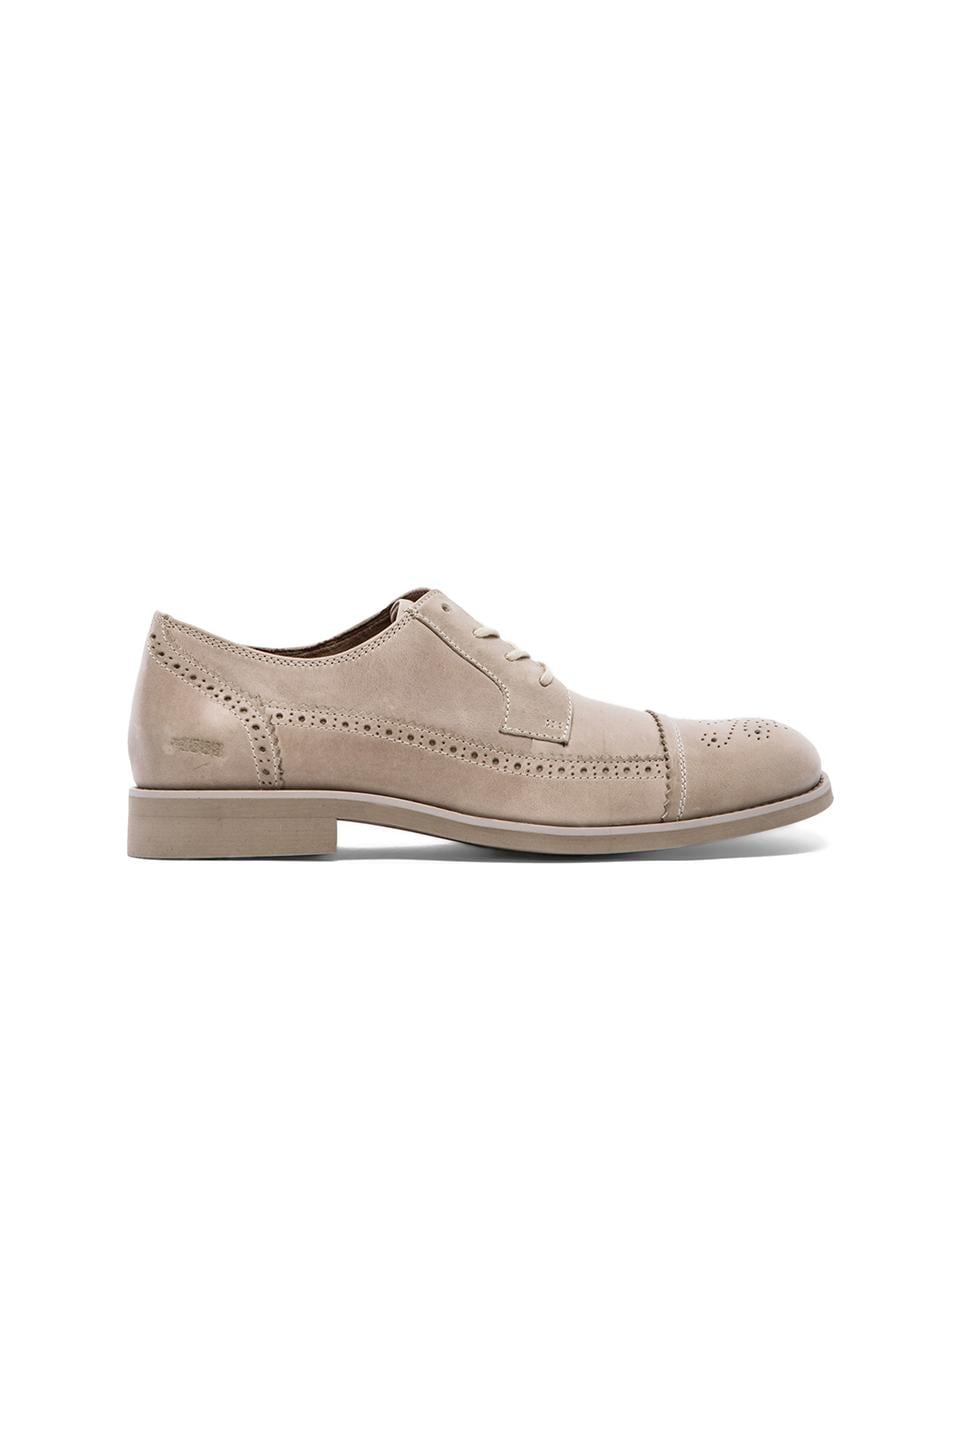 Wolverine 1883 Wallace Brogue Oxford in Grey